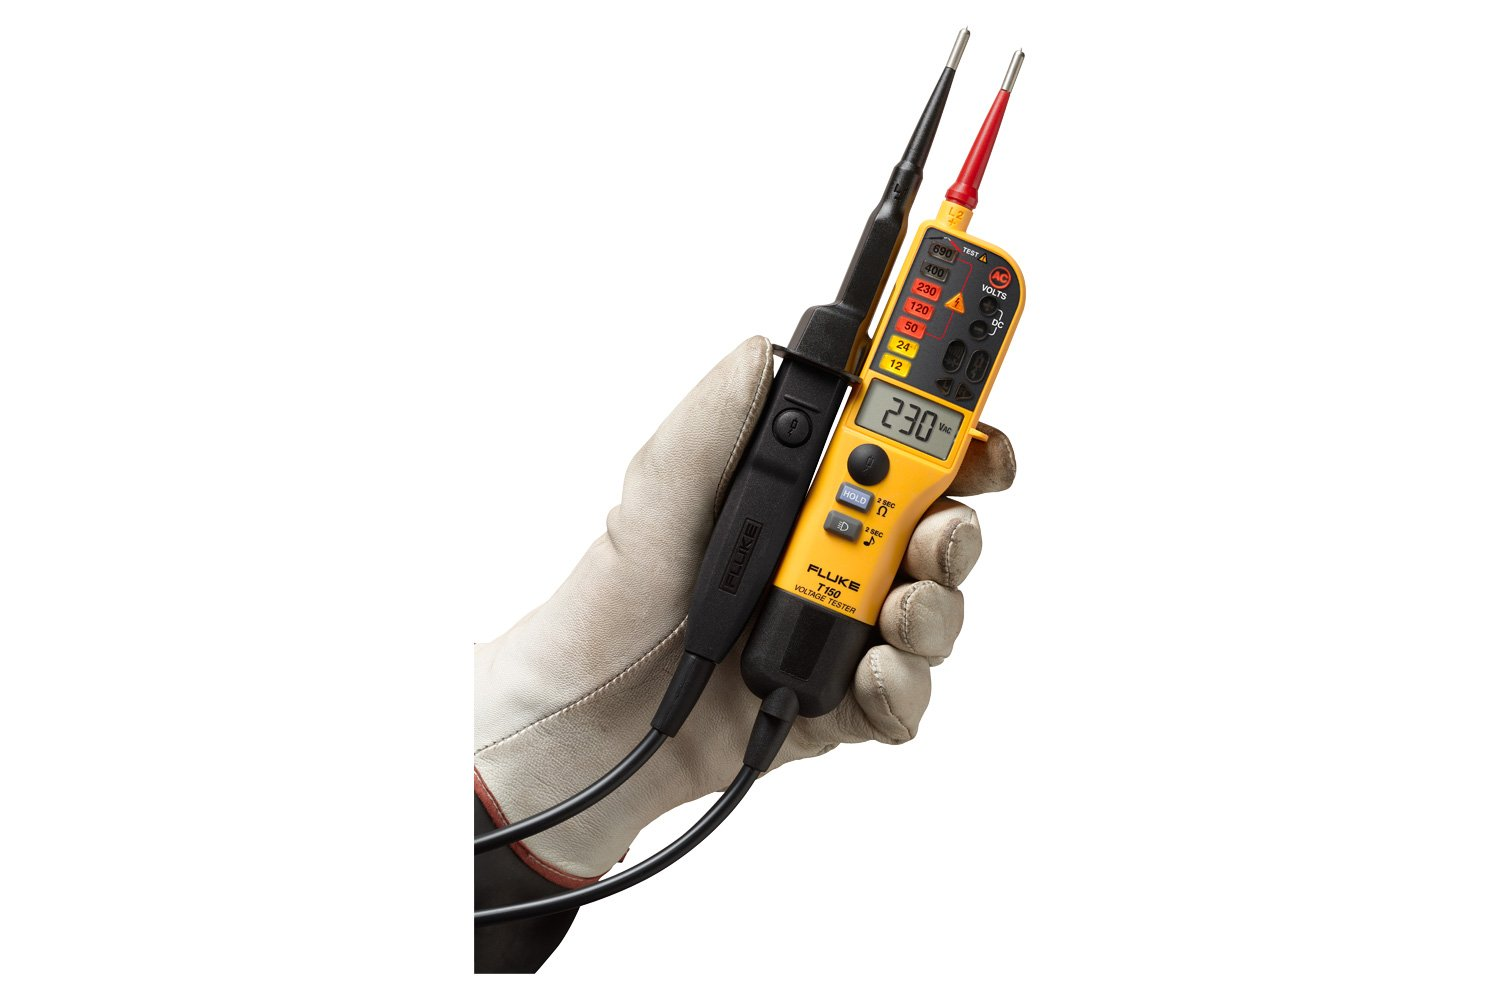 T90 T110 T130 T150 Voltage And Continuity Testers Fluke Long Probe Test Light Car Circuit Tester 12v 6v Dc